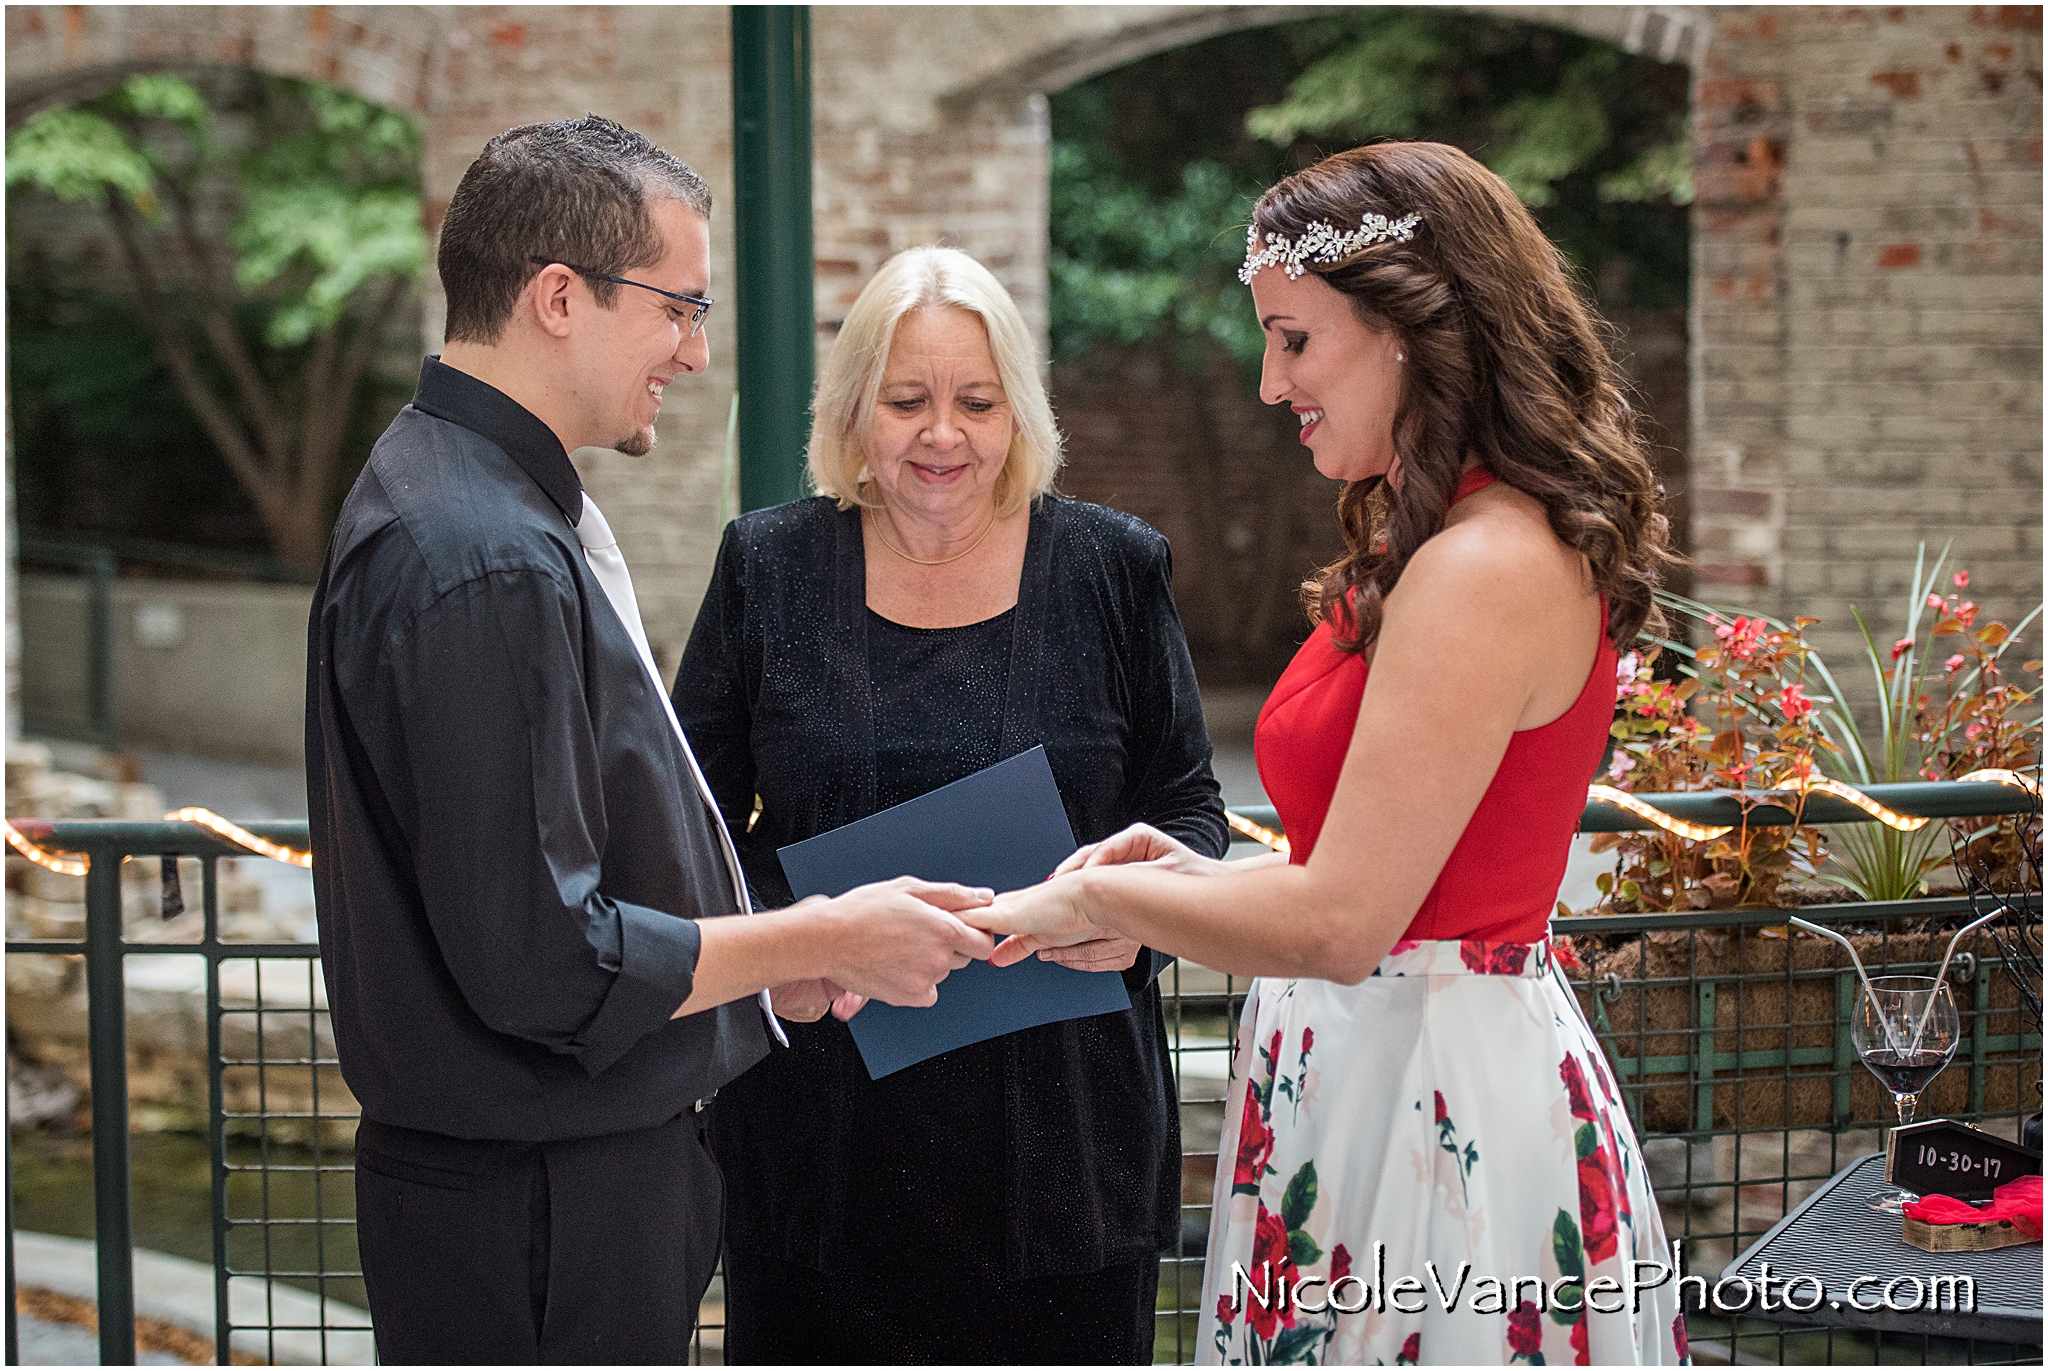 Exchanging rings during their wedding ceremony at Bookbinders on the back patio.